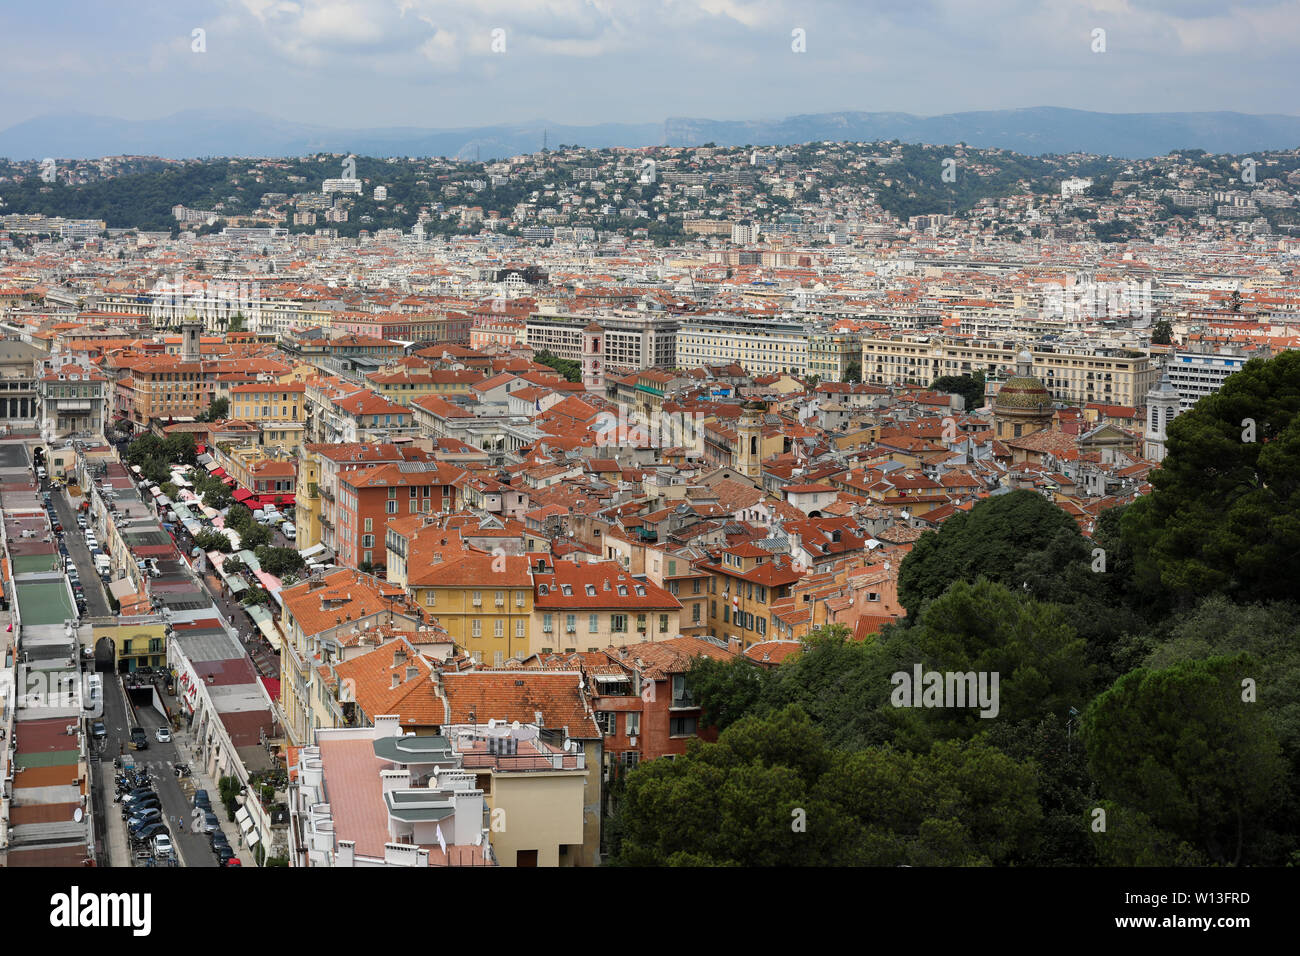 Nice old town - Vieille Ville - viewed from Colline du Château (Castle Hill) in Nice, France Stock Photo